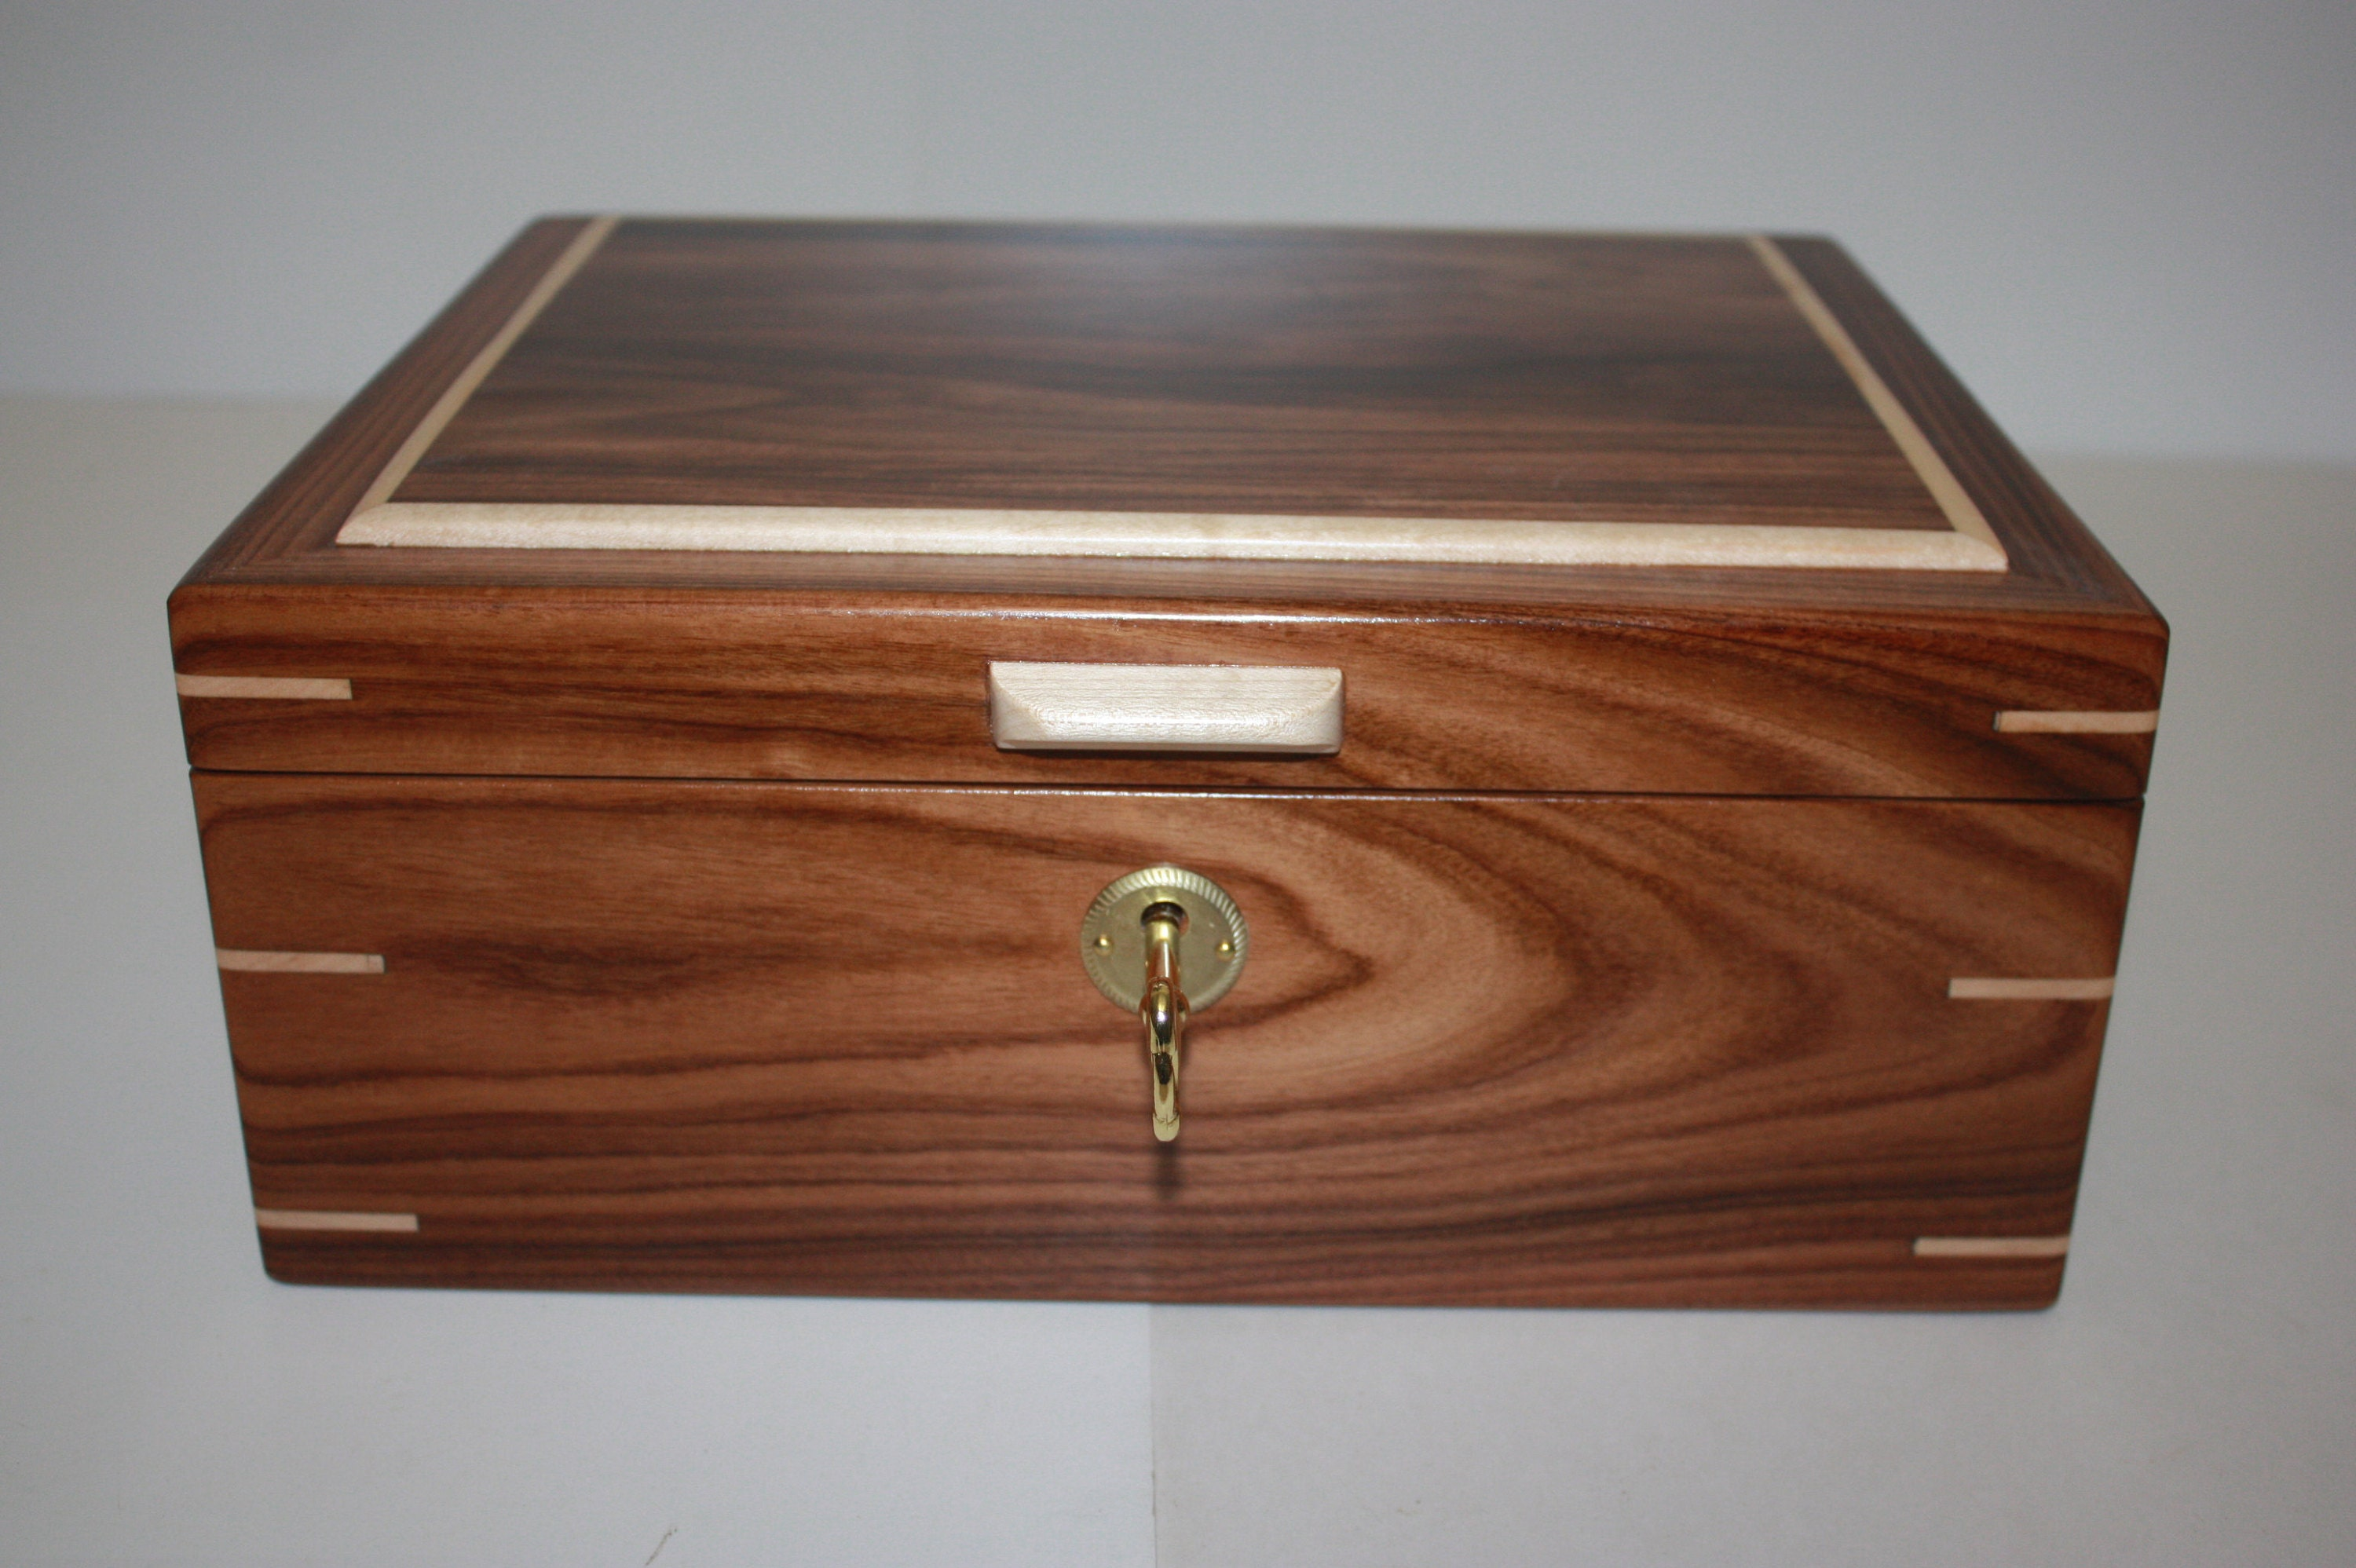 Locking Morado/Bolivian Rosewood and Maple Humidor For Sale